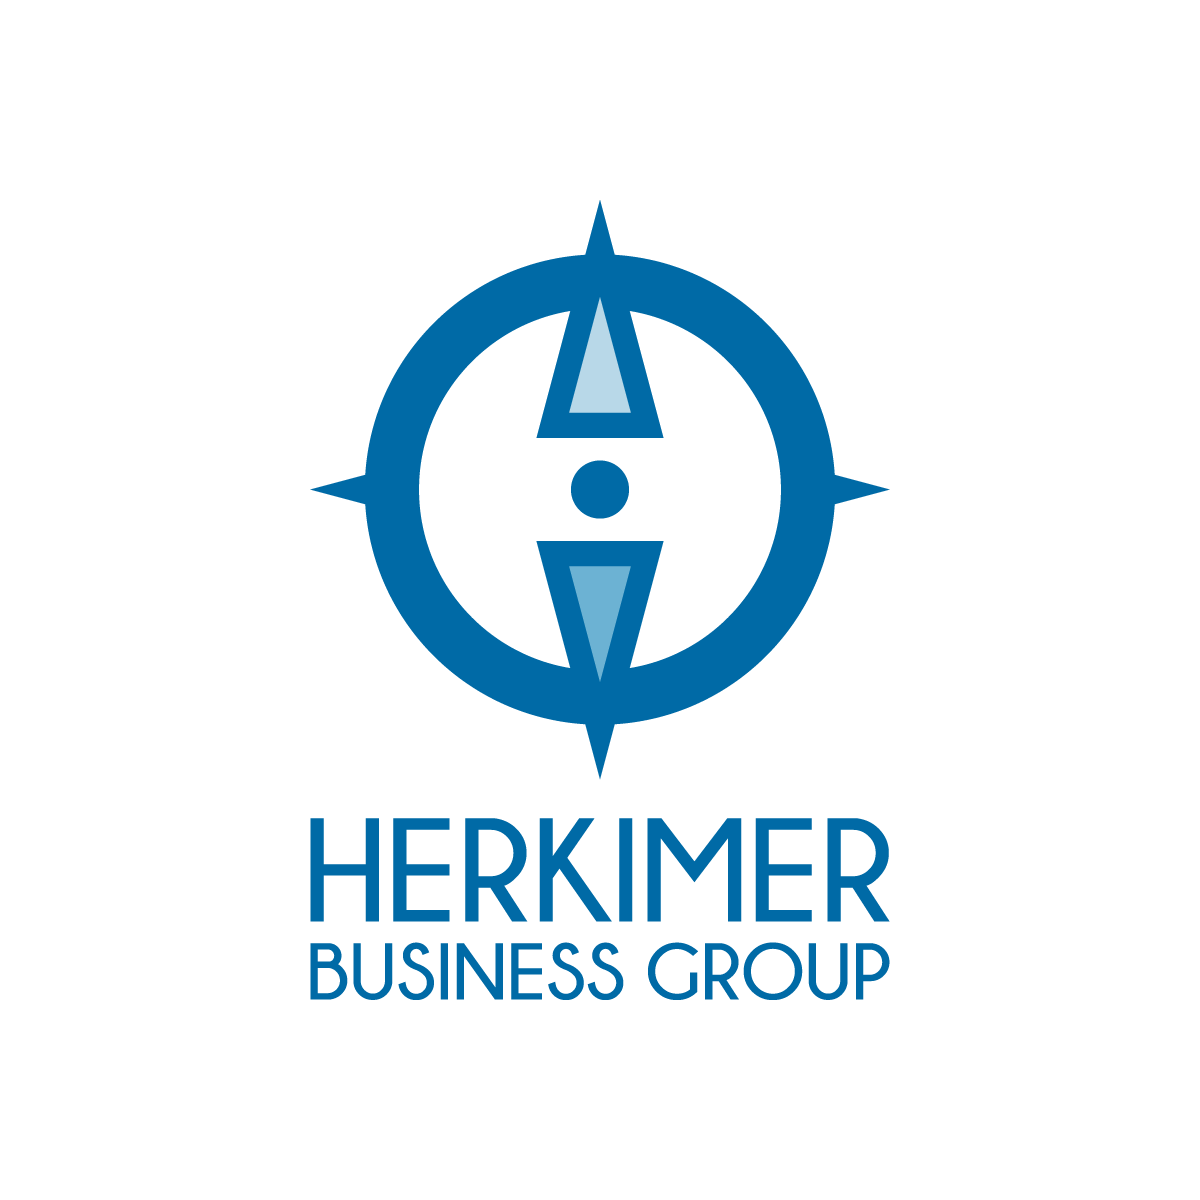 Herkimer Business Group